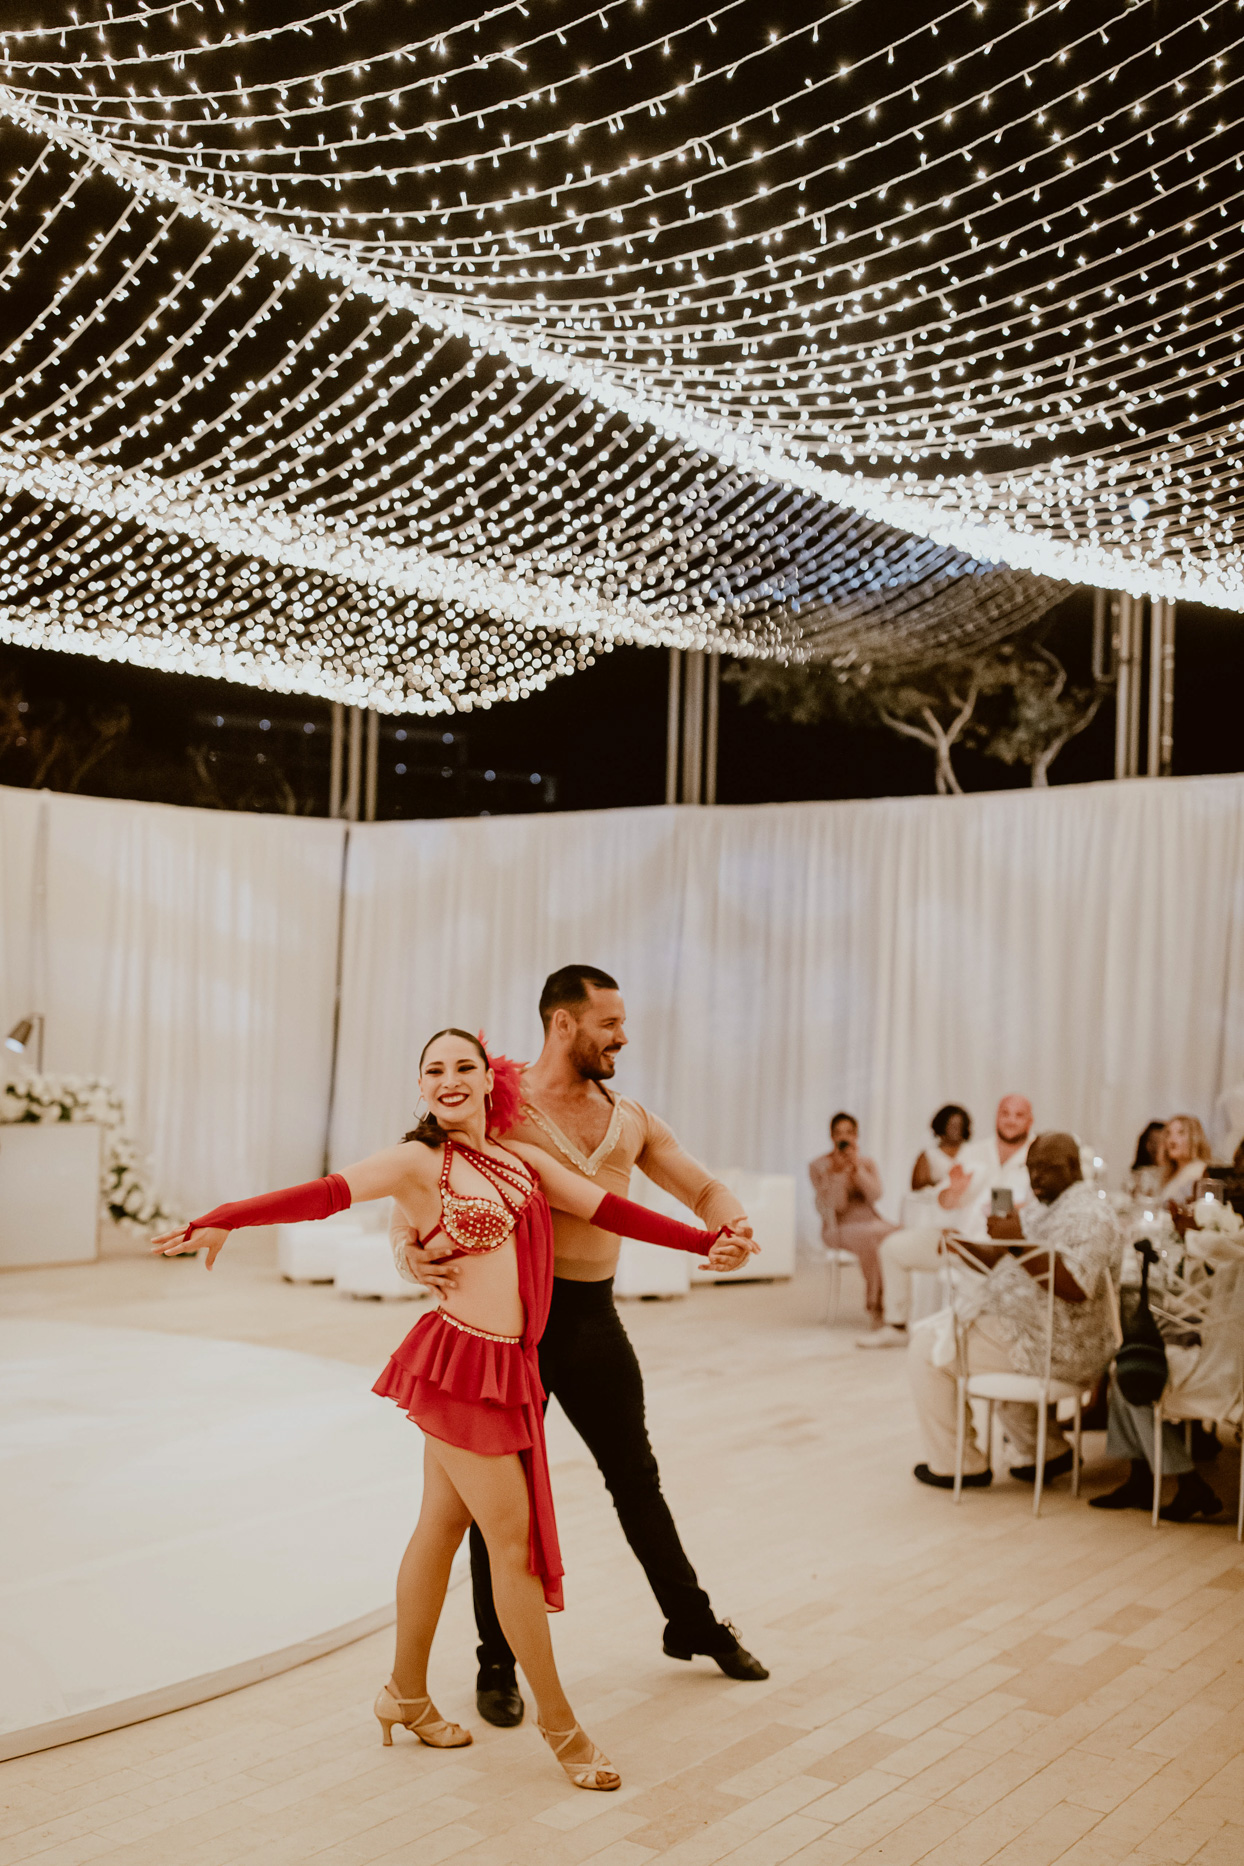 salsa dancers at reception with string lights above